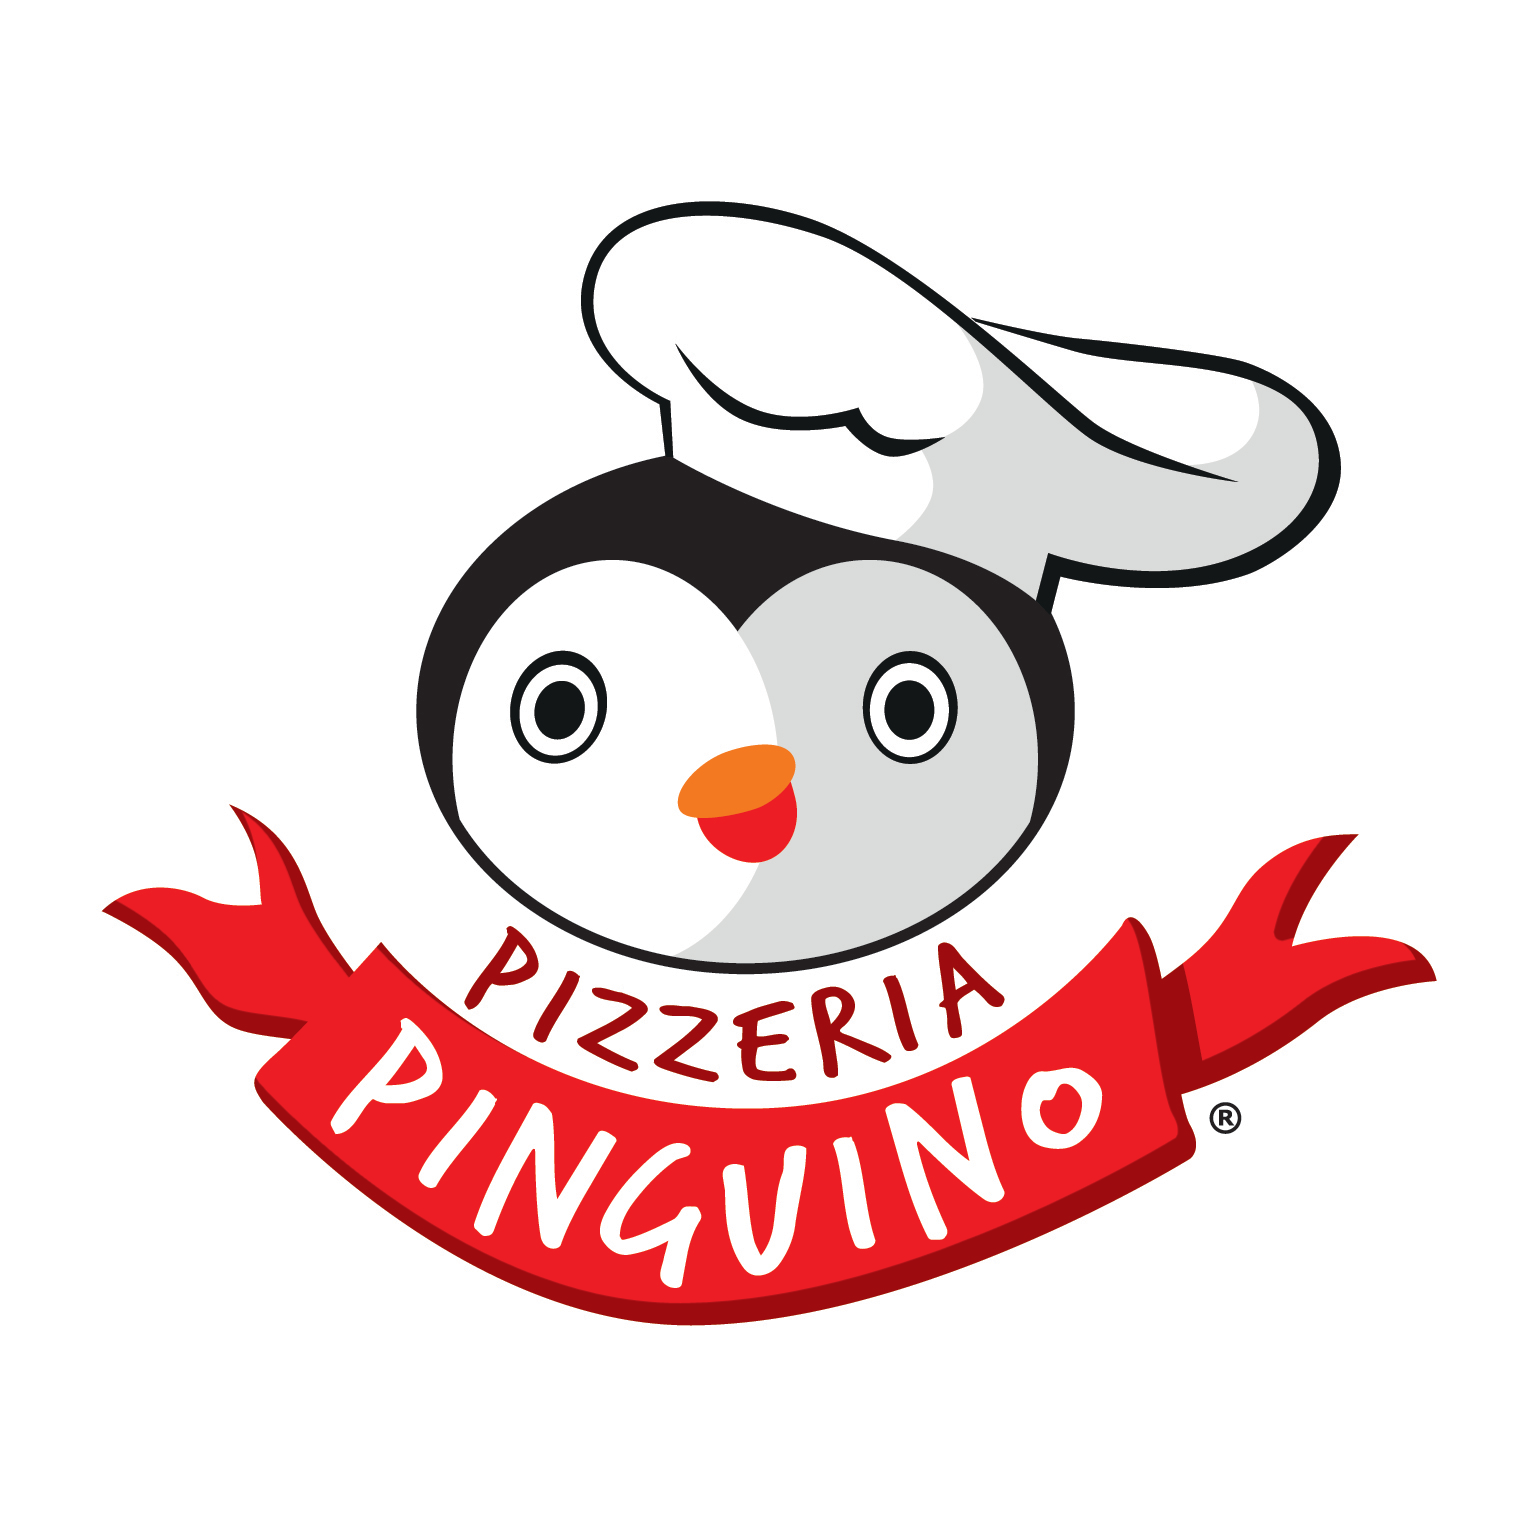 Pizzeria Pinguino